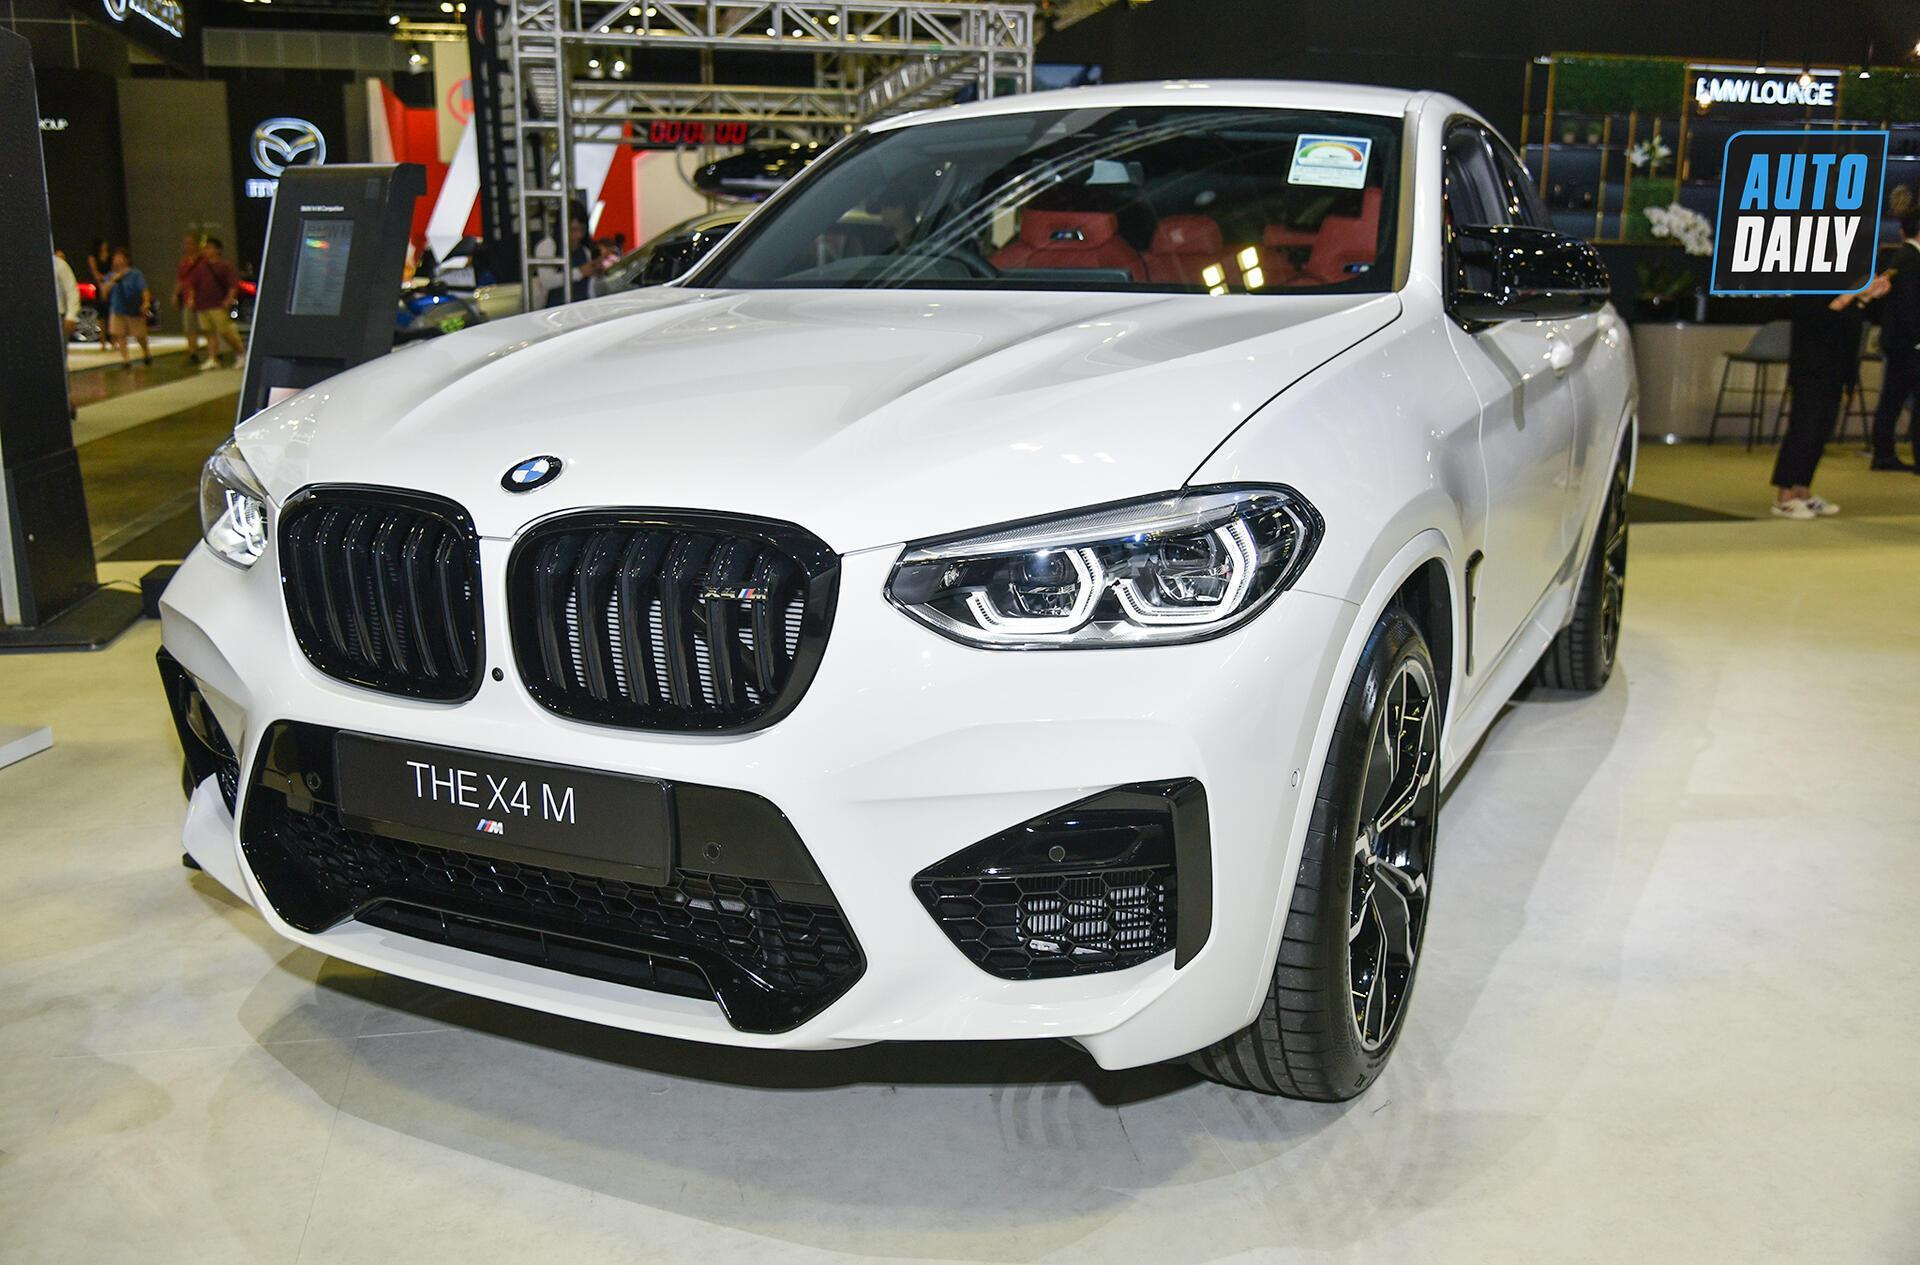 dien-kien-bmw-x4m-competition-2020-manh-503-ma-luc-gia-8-ty-dong